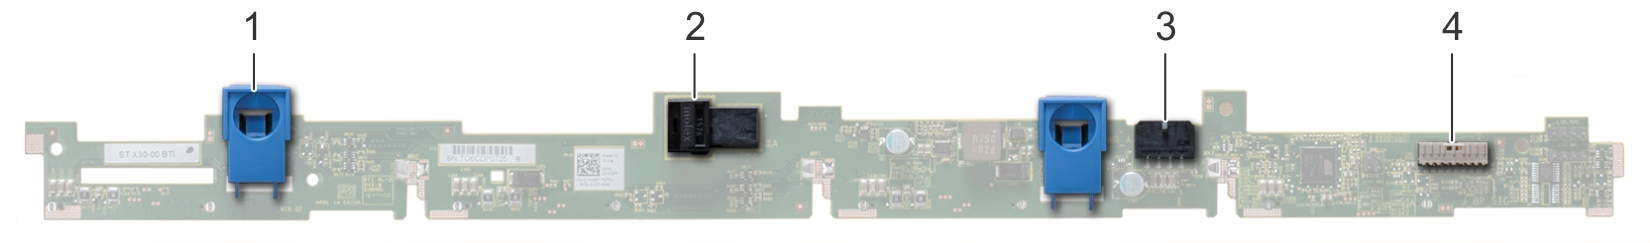 This image shows 4 x 3.5 inch drive backplane